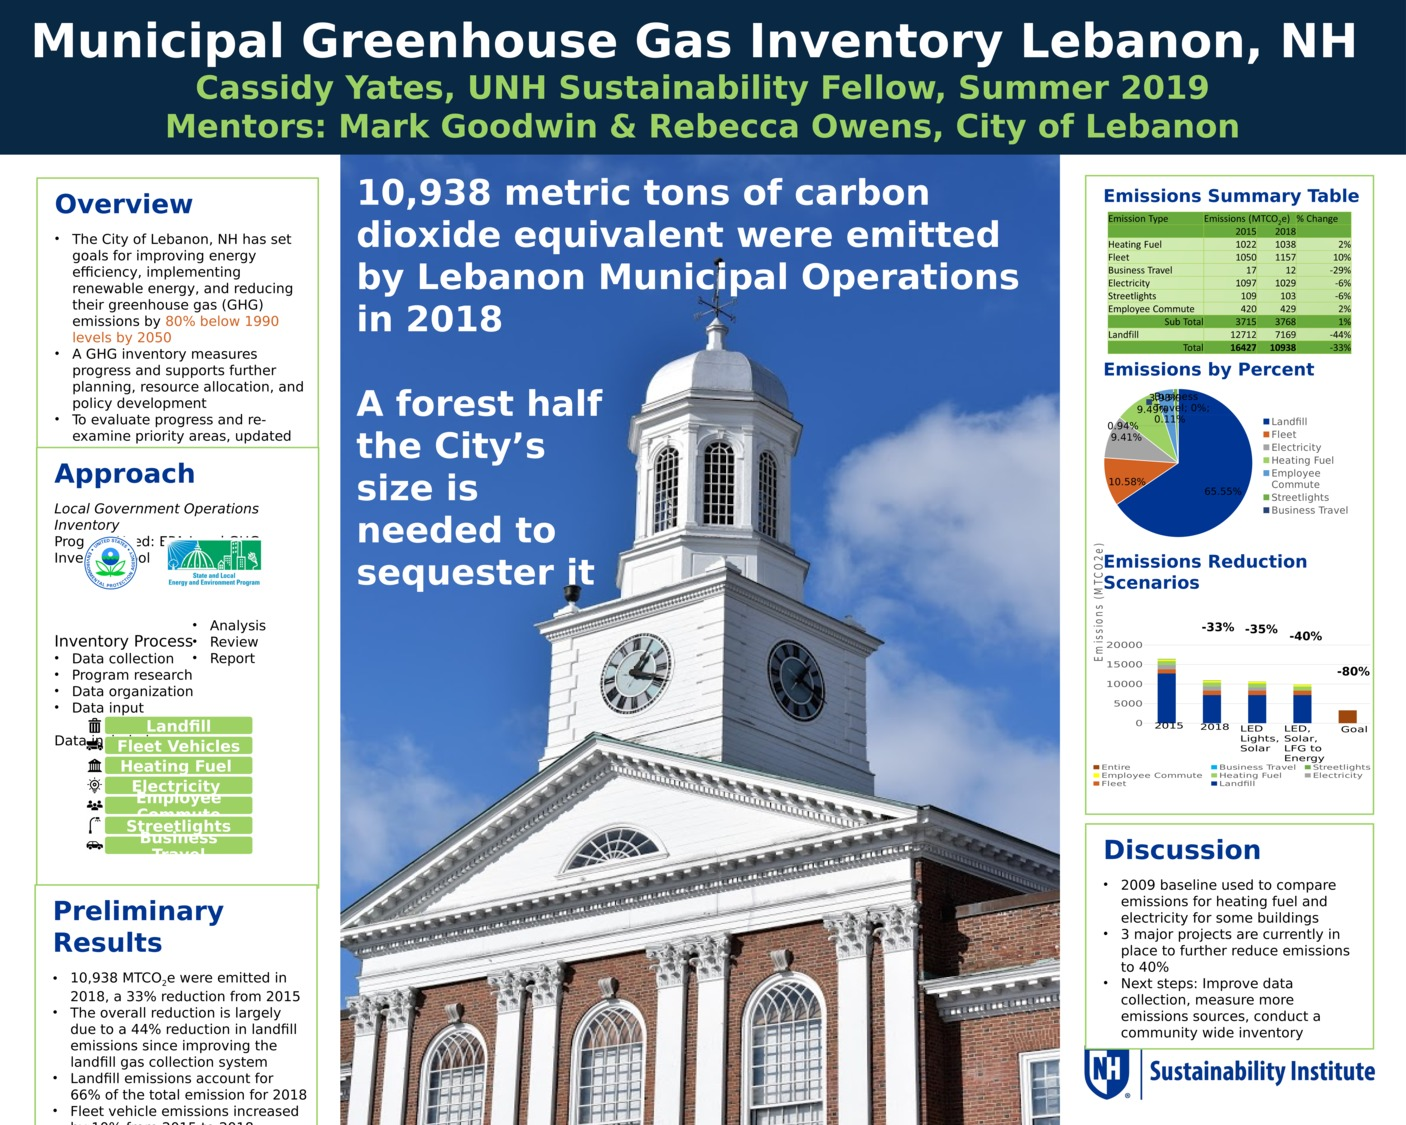 Municipal Greenhouse Gas Inventory Lebanon, Nh by cry1004